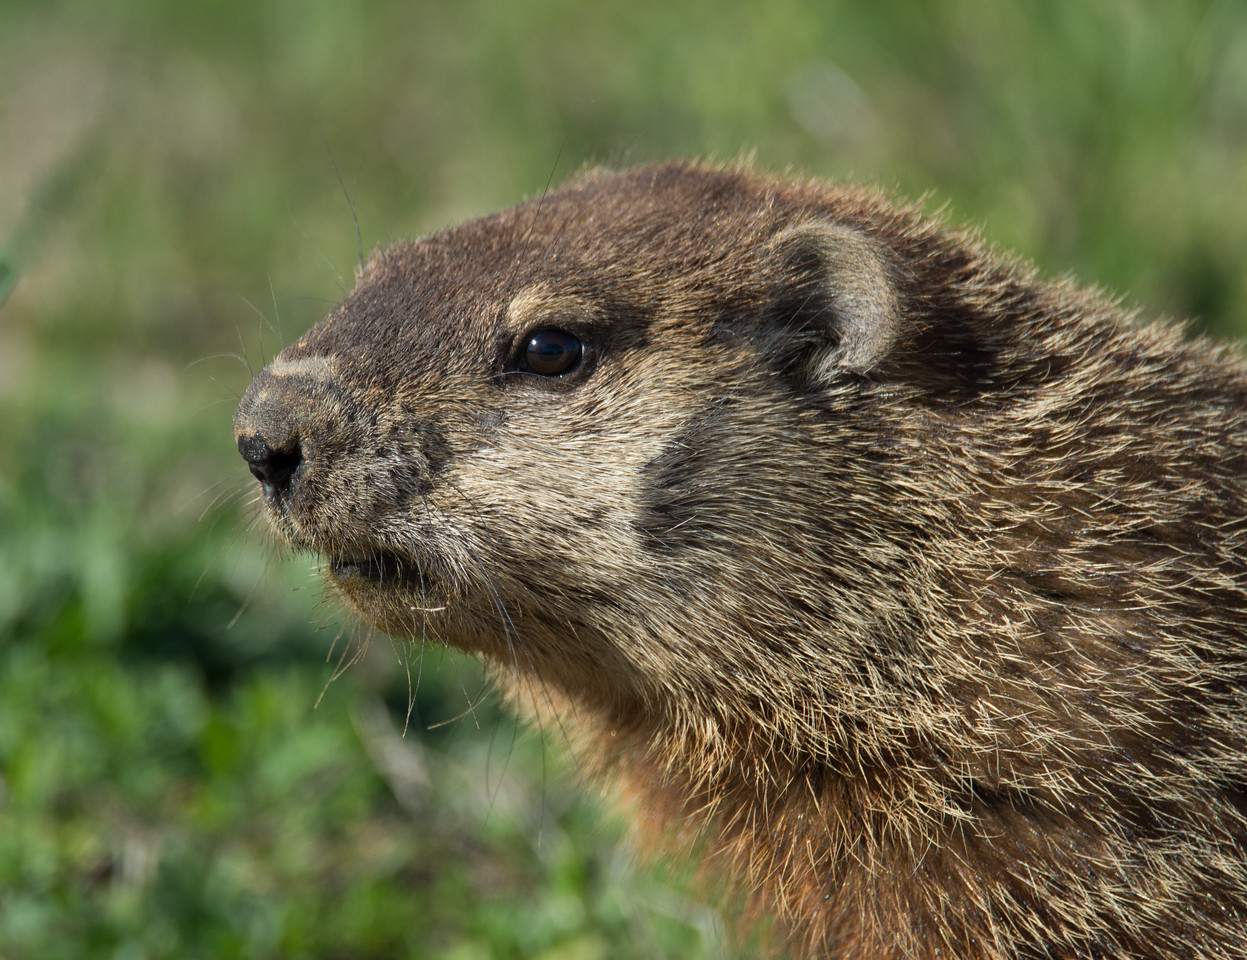 Closeup of groundhog